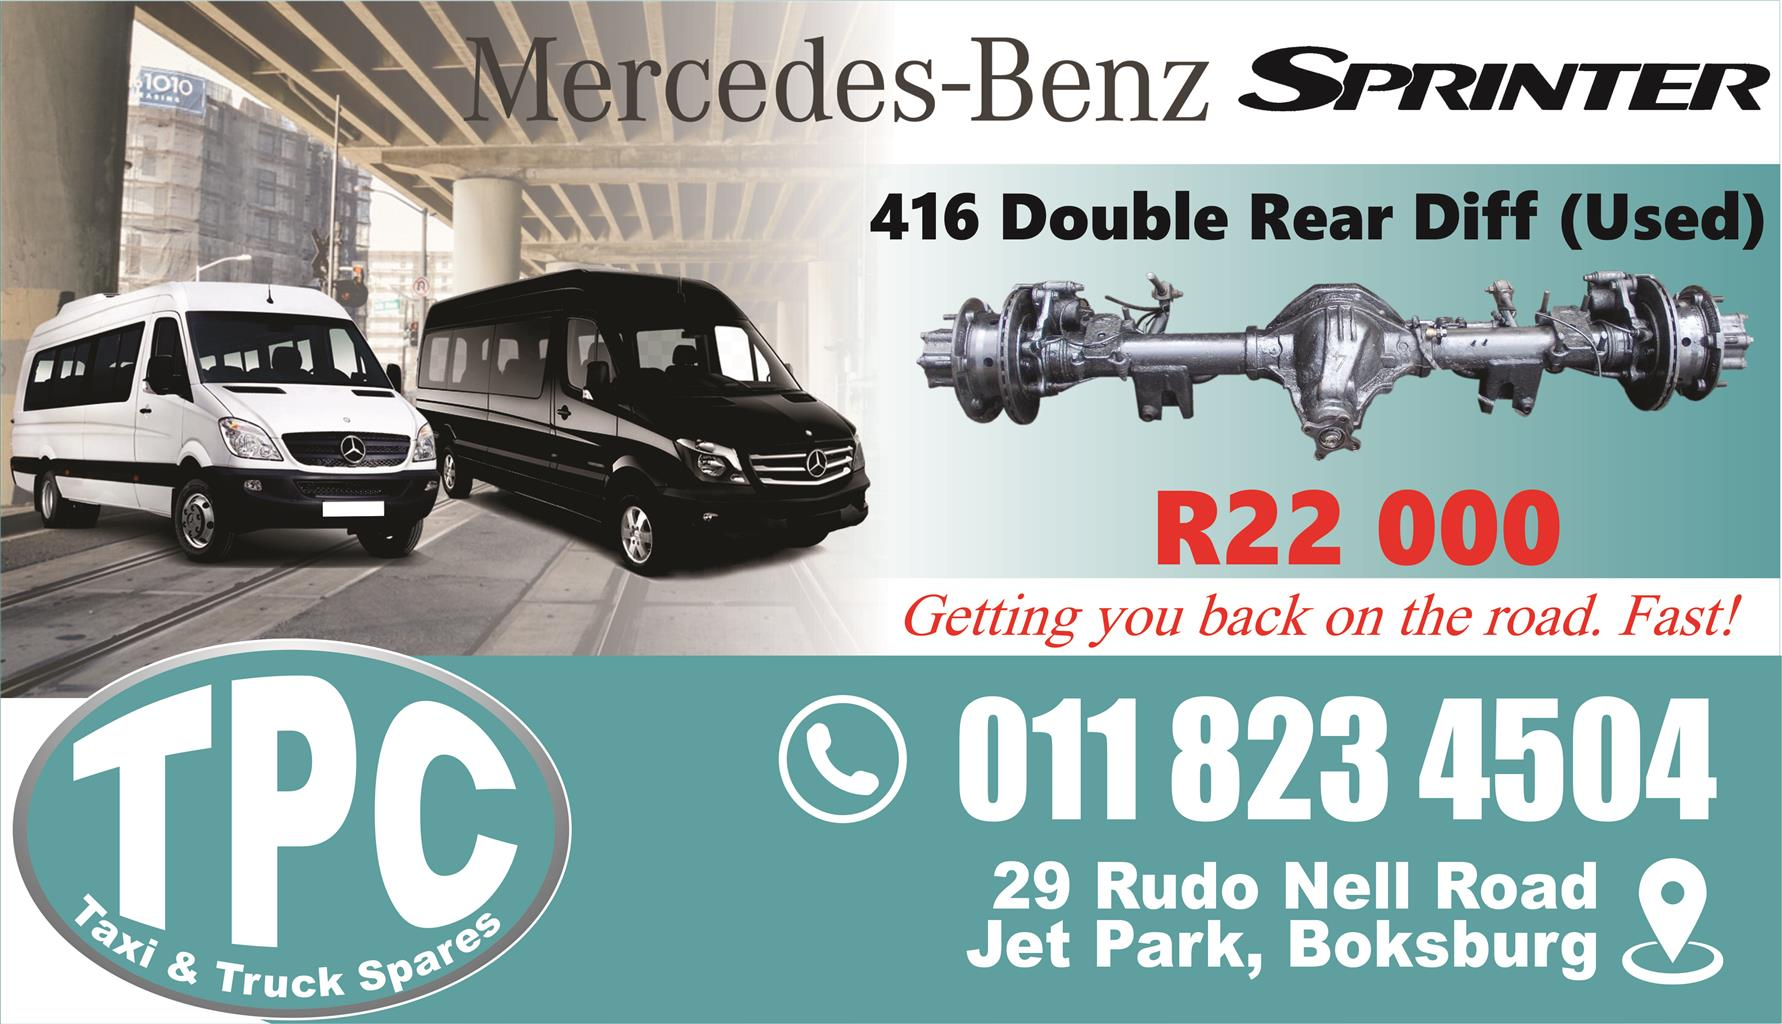 Mercedes Sprinter 416 Diff   Used   New U0026 Used Quality Replacement Taxi  Spare Parts.